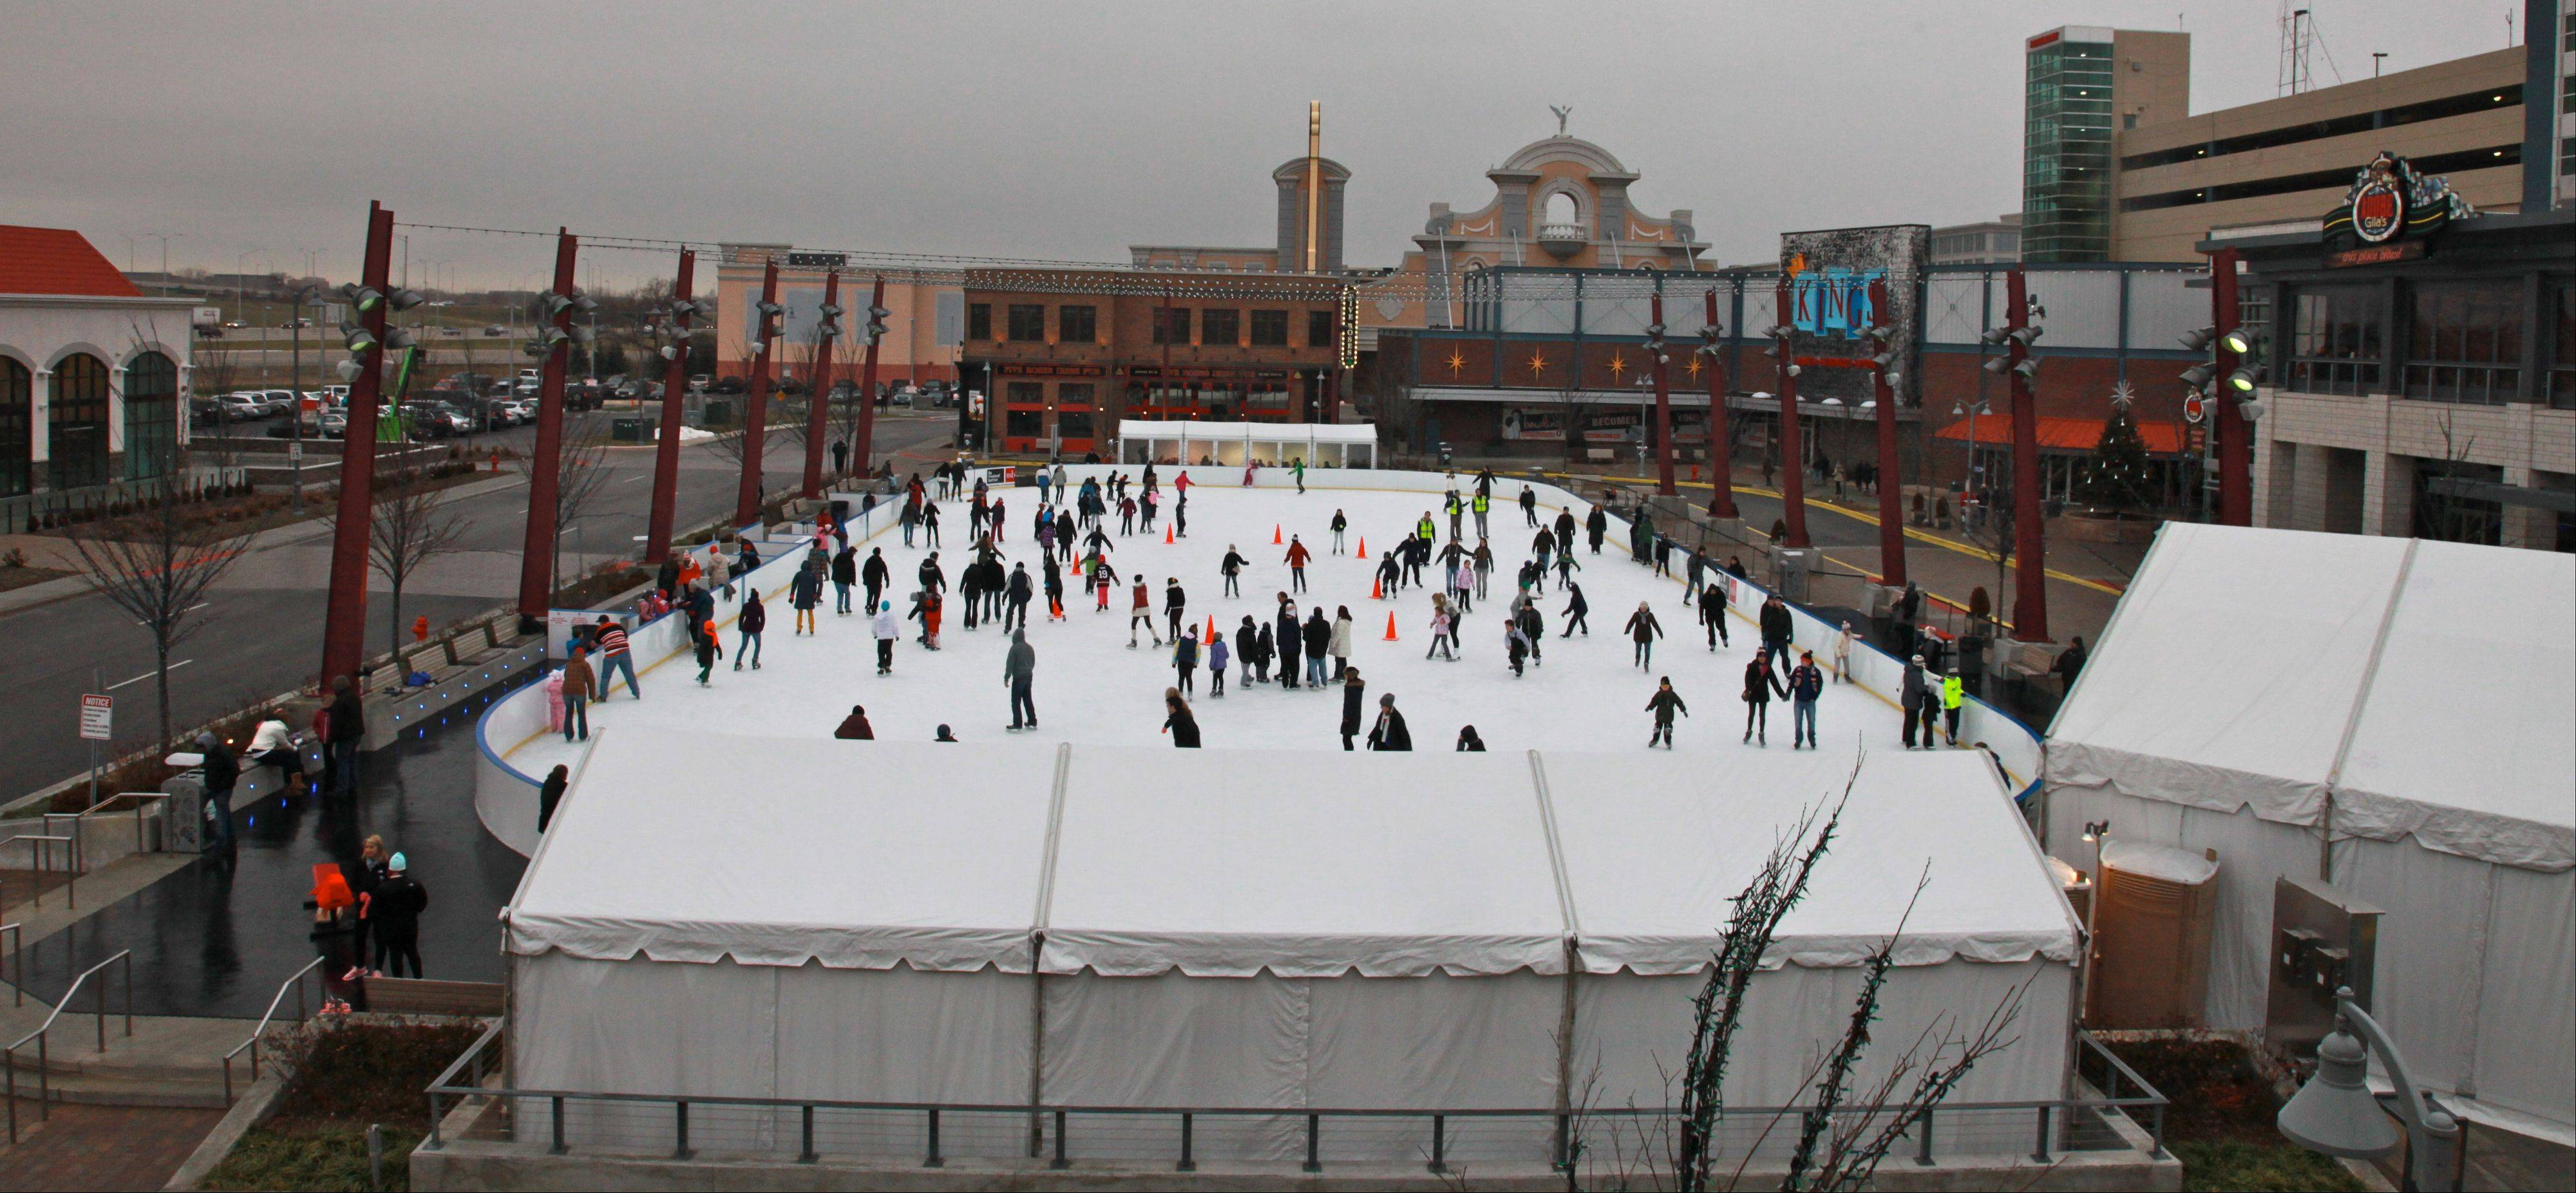 Rosemont's outdoor ice skating rink will be transformed into a hockey rink next month, and will play host to 127 games over the course of three weeks.